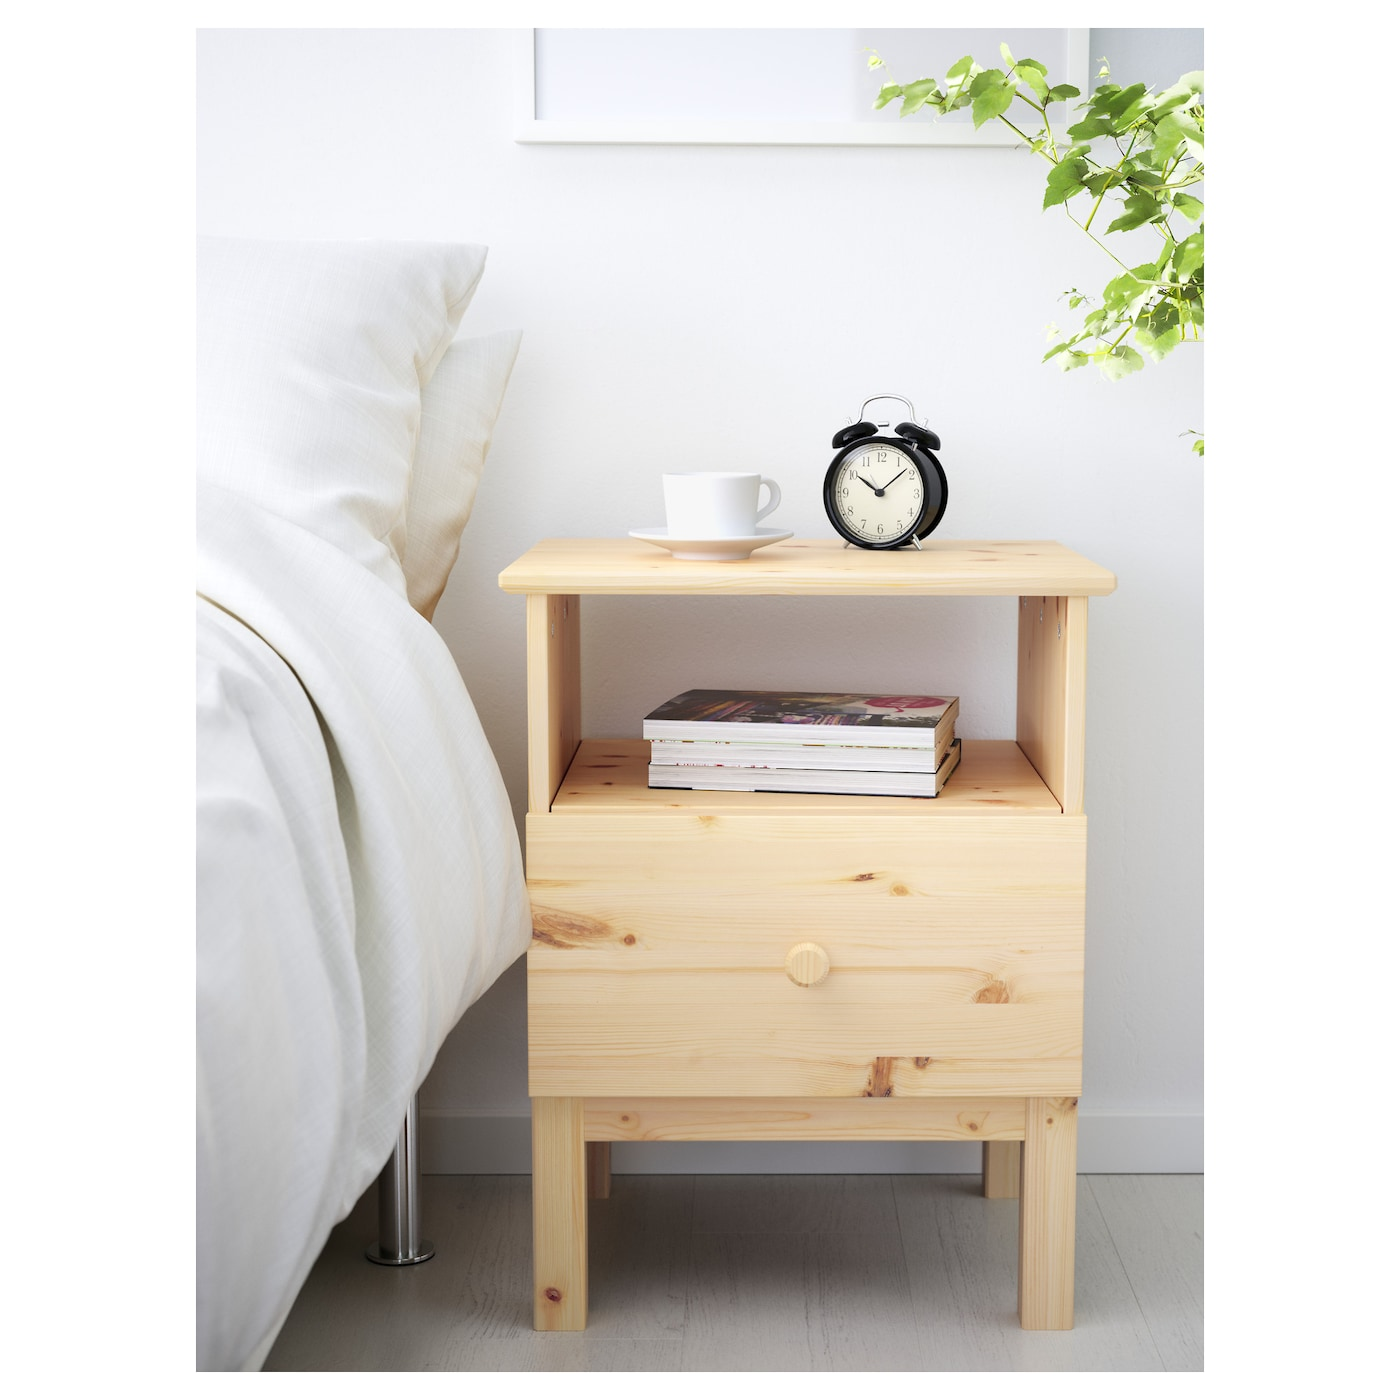 Tarva bedside table pine 48x62 cm ikea - Pictures of bed side ...